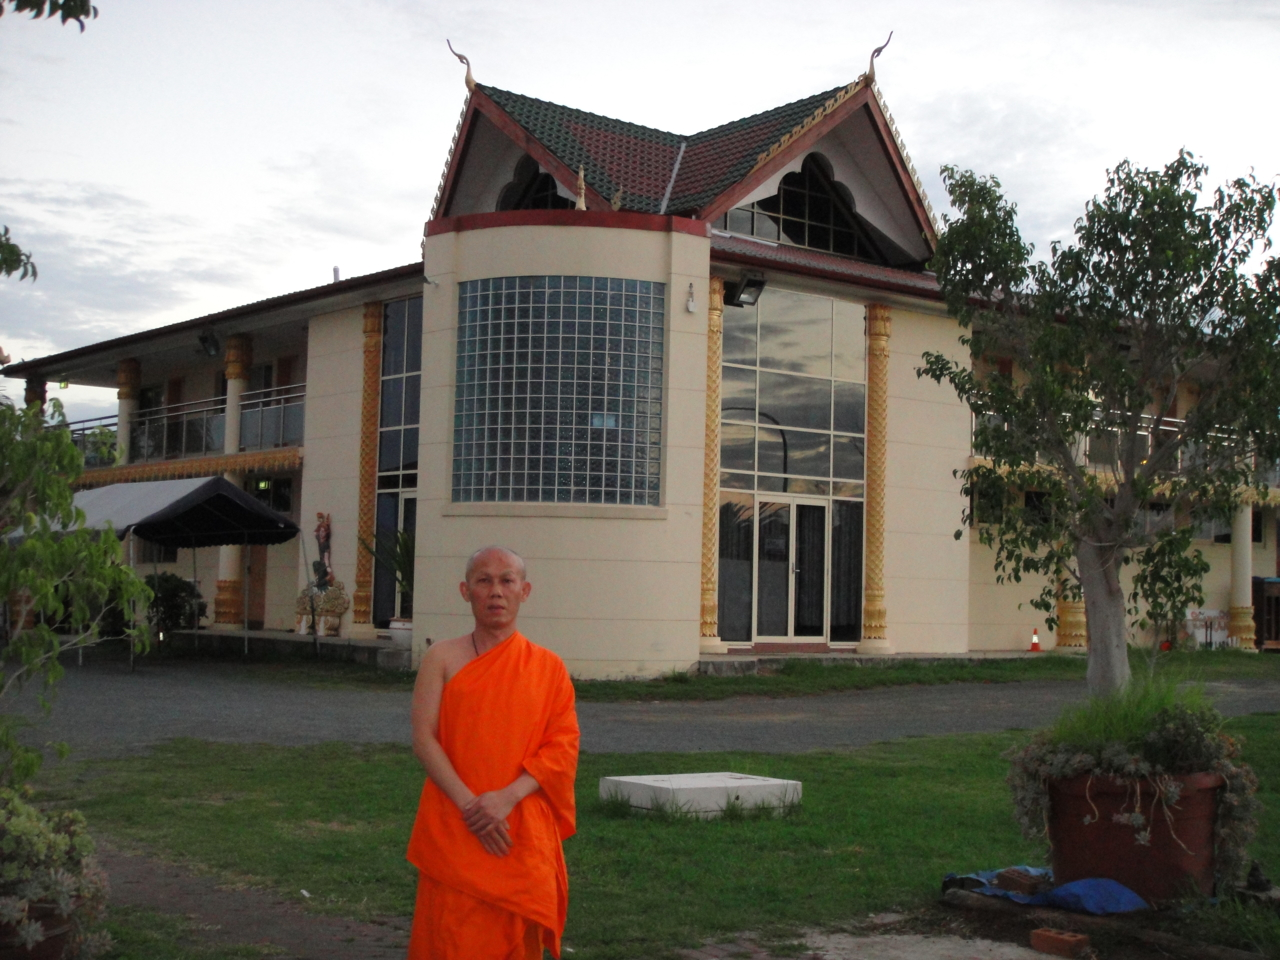 Ven.Asadachanh at temple 02